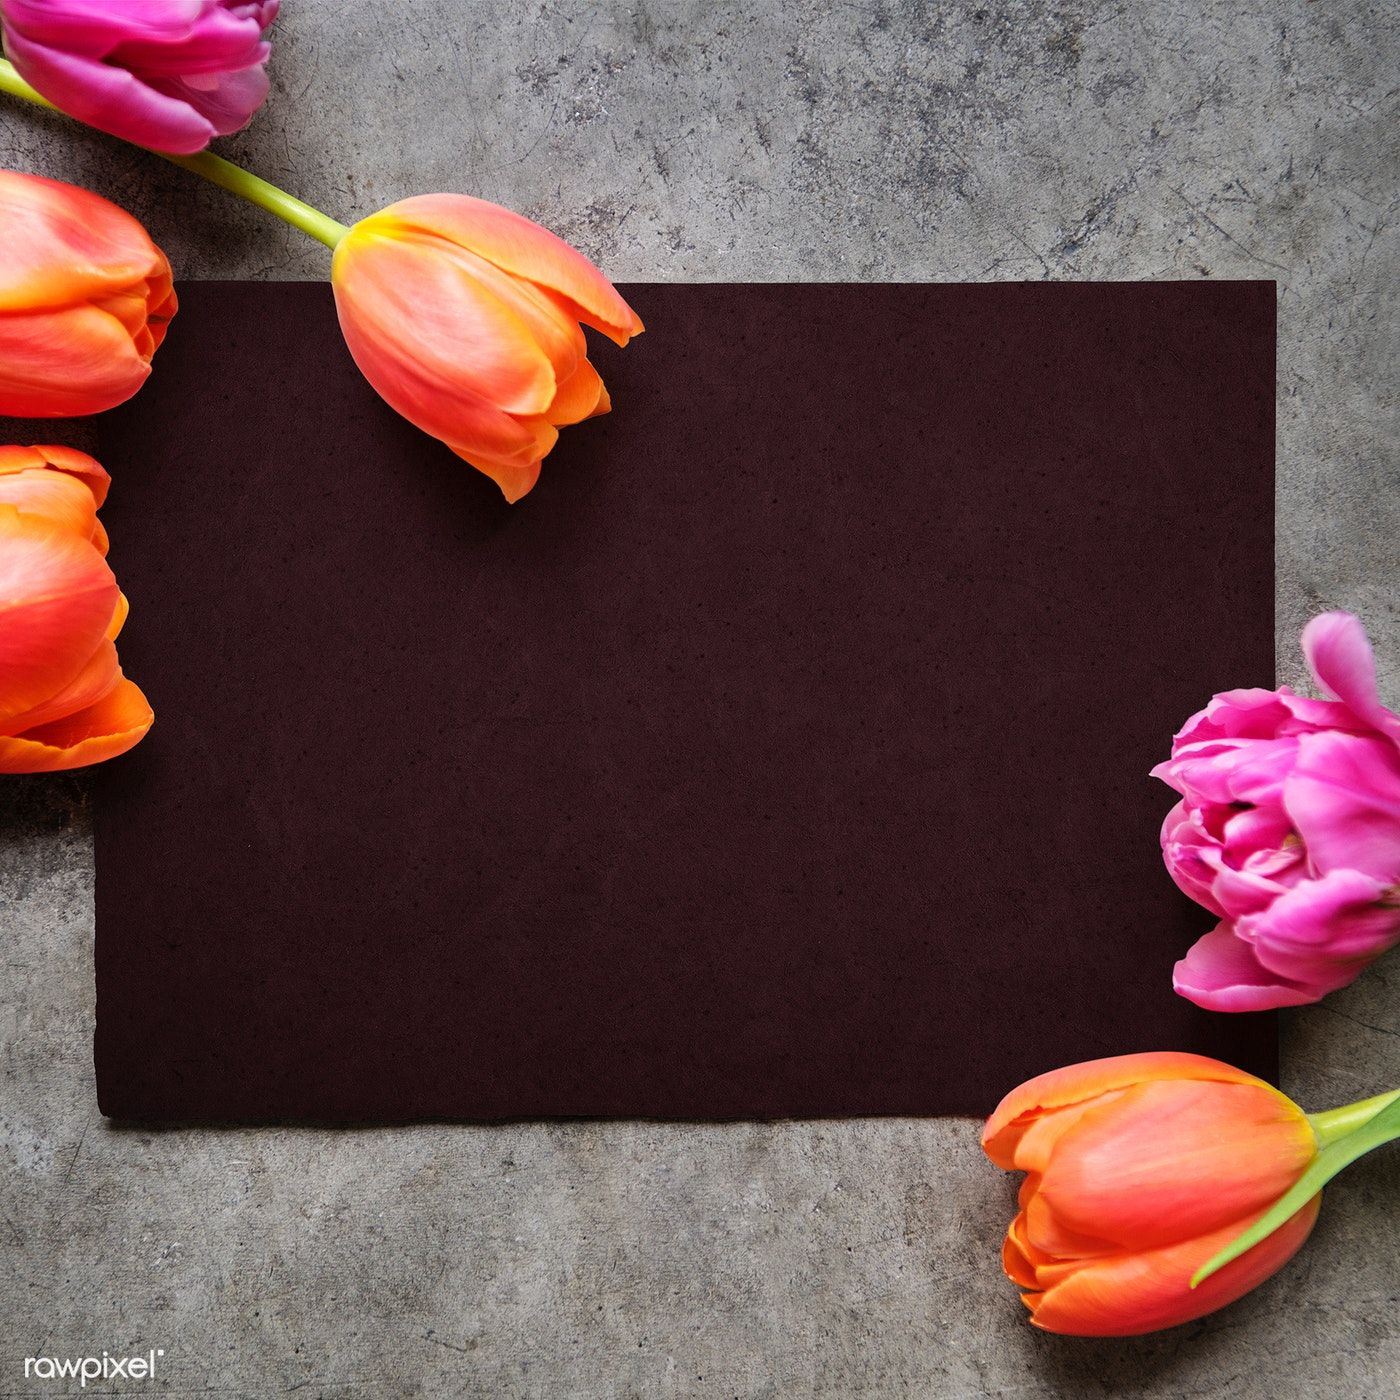 Happy Anniversary Card With Tulips And Peony Free Image By Rawpixel Com Jira Happy Anniversary Happy Birthday Art Happy Anniversary Cards